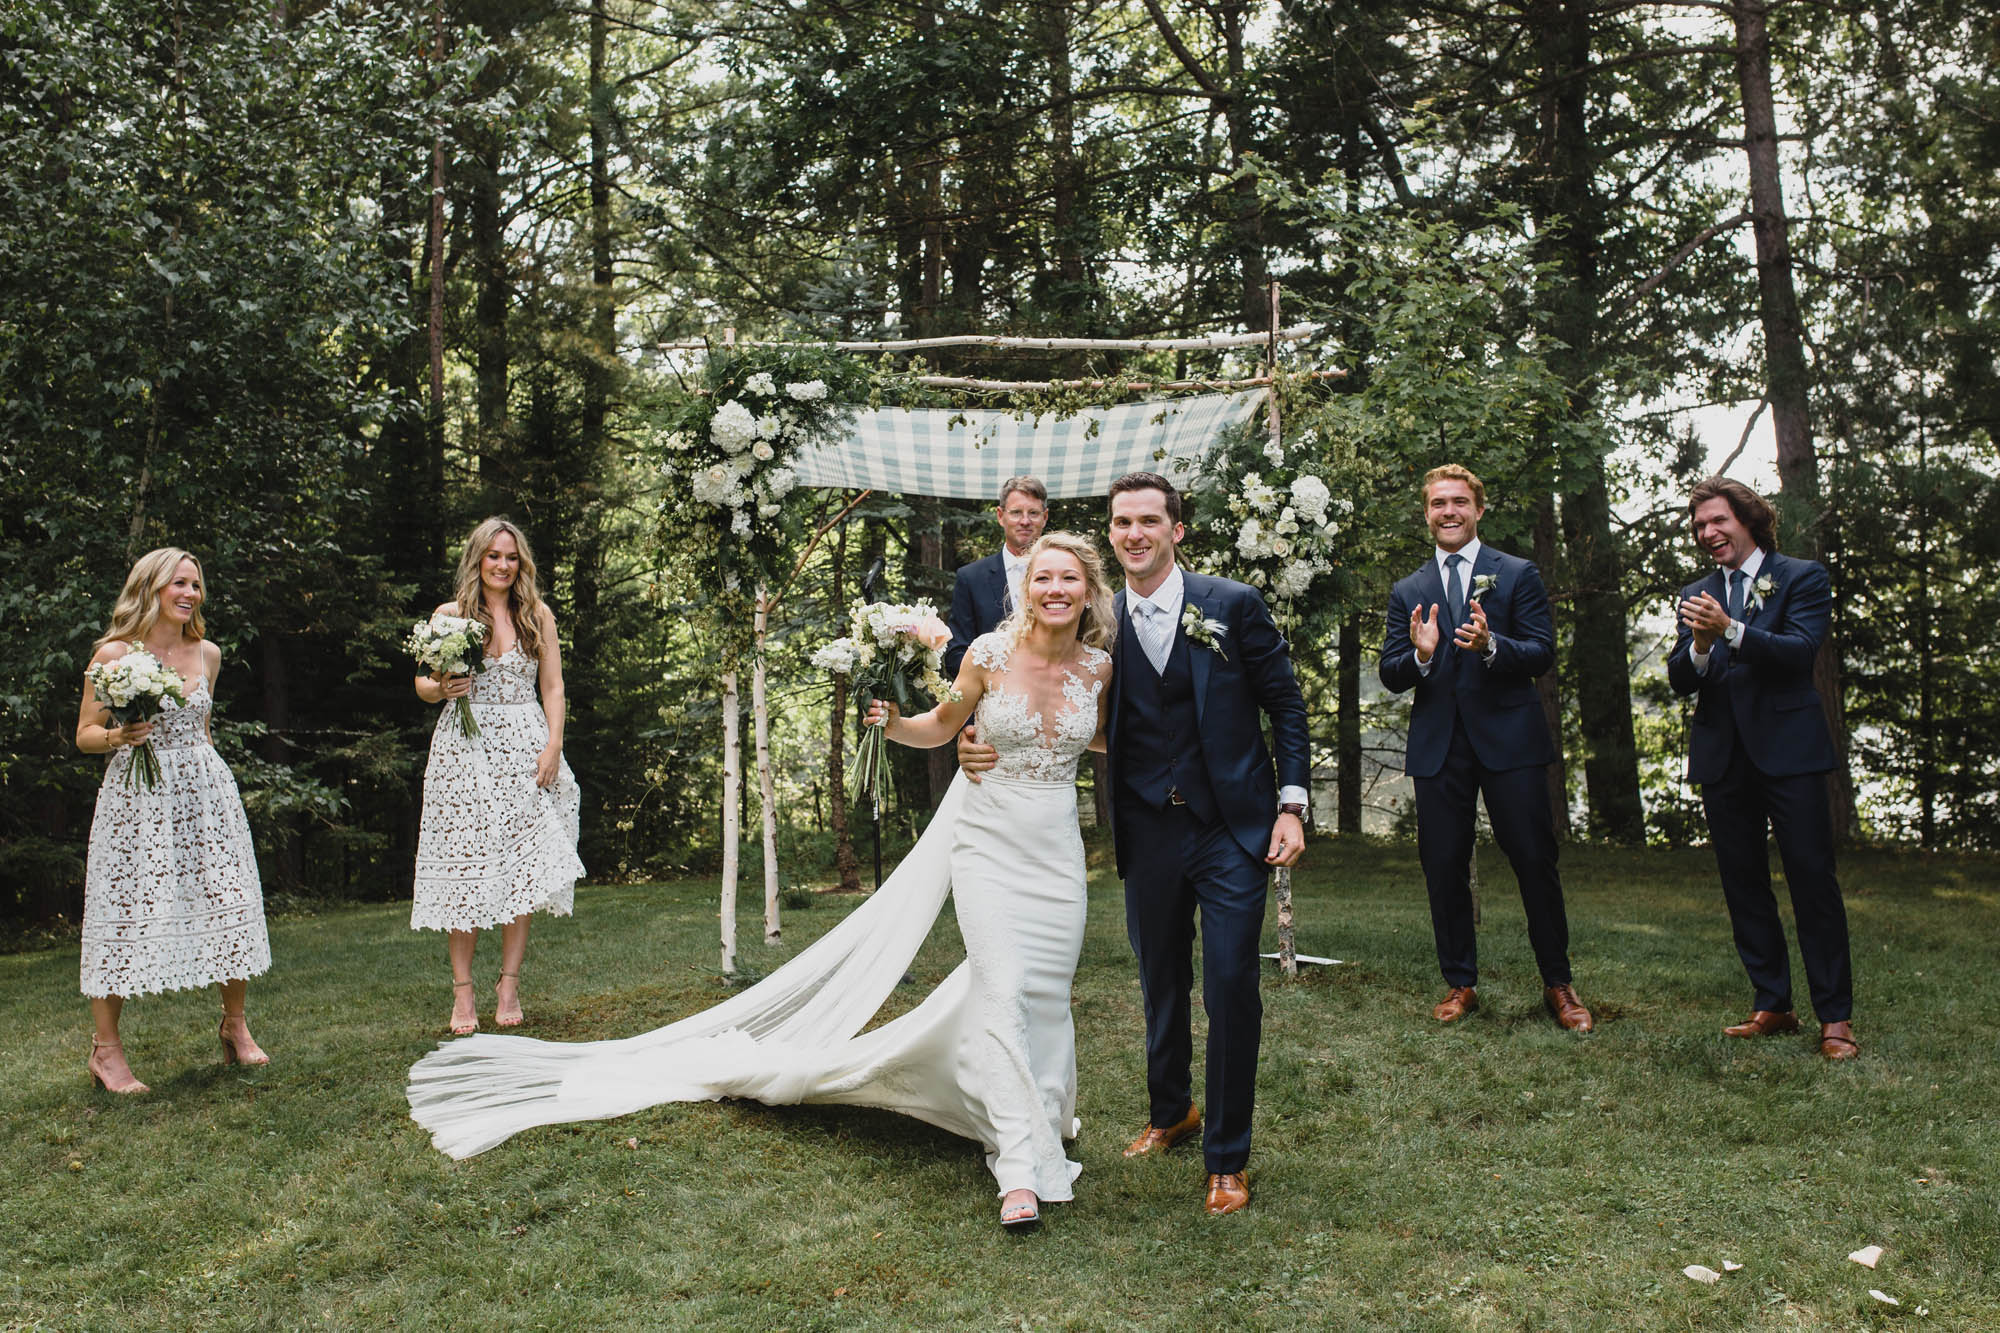 Abby + Matt - Hayward, WIsconsin